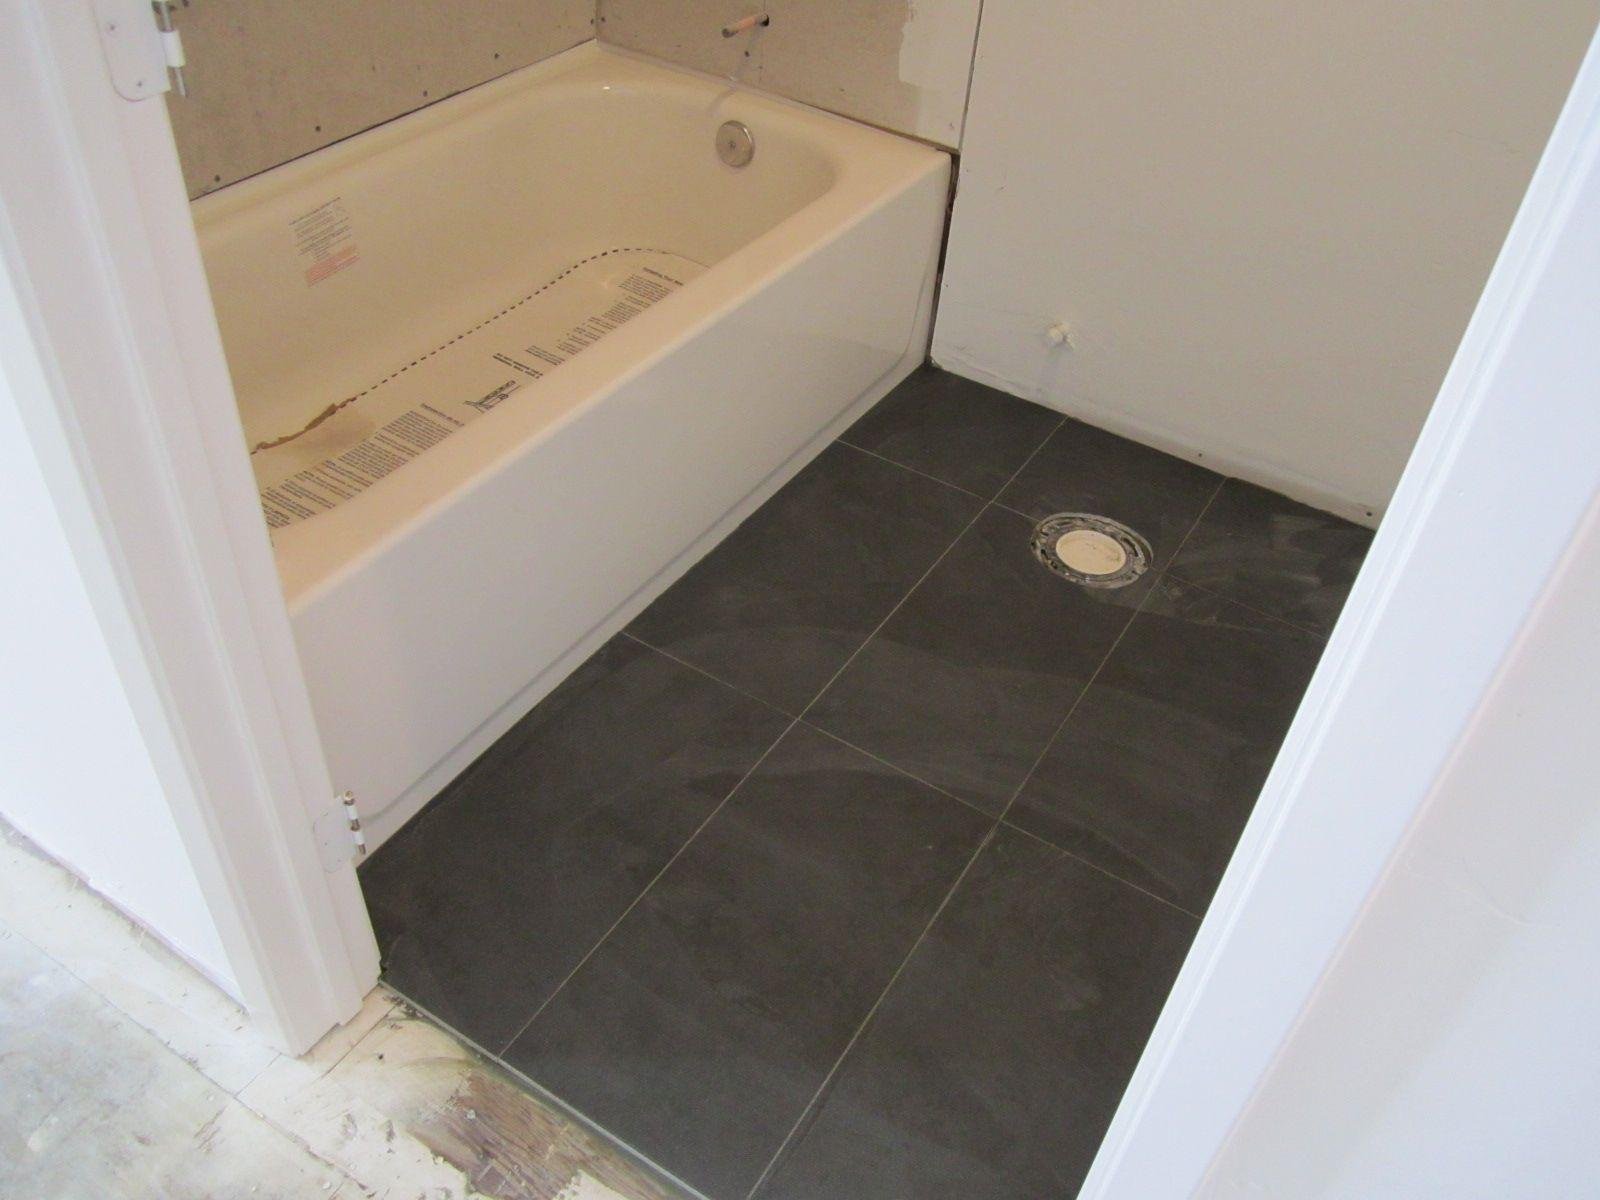 12x24 Tile In A Small Bathroom Small Bathroom Small Bathroom Tiles Modern Bathroom Tile